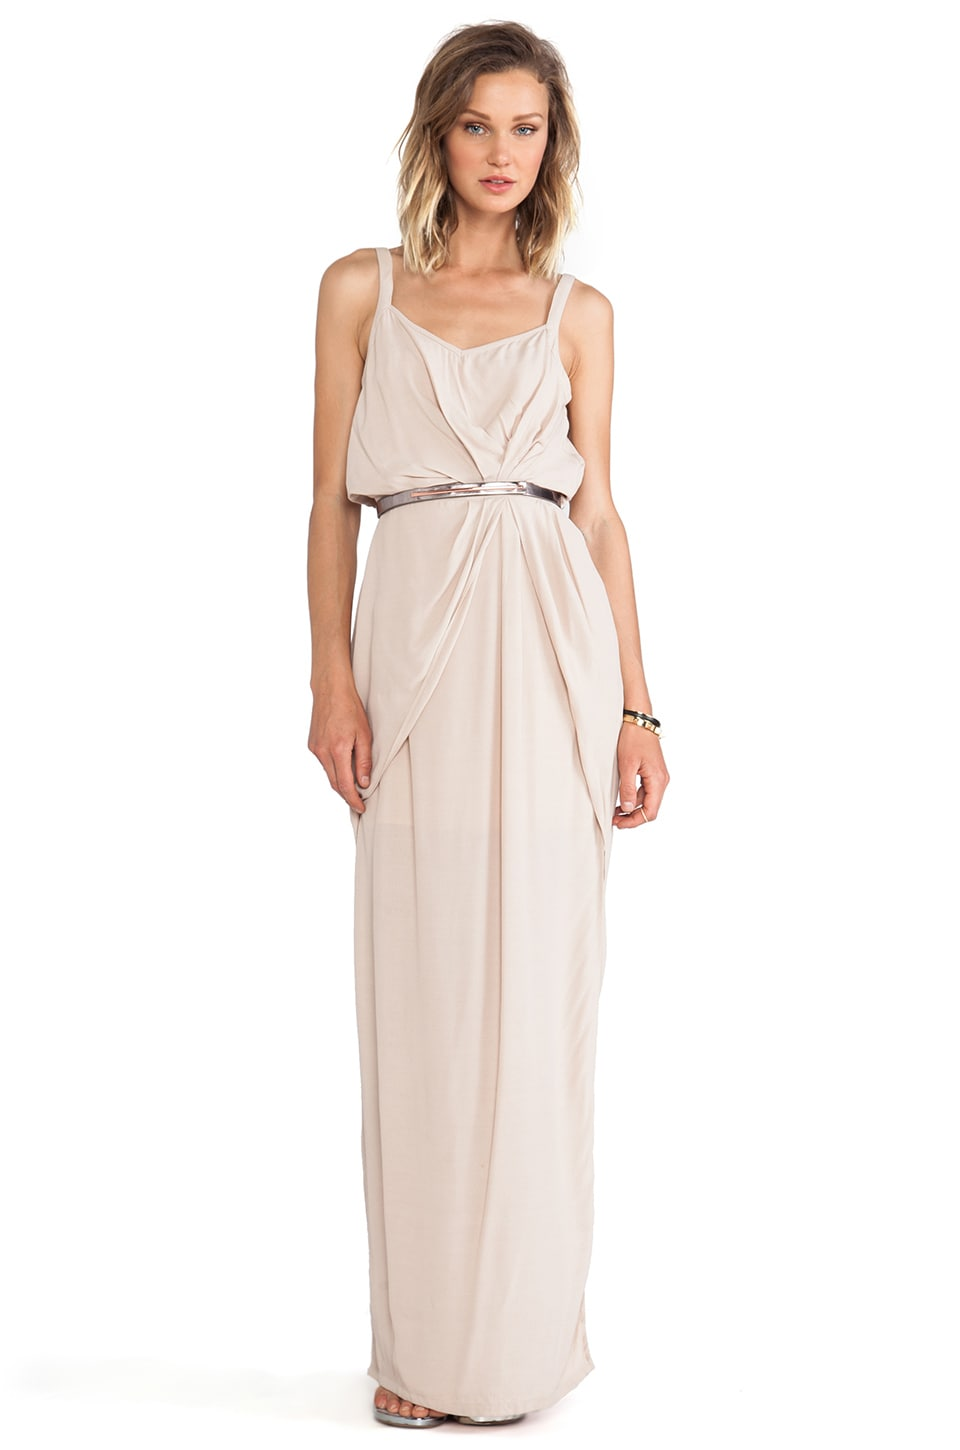 Wish Eternal Maxi Dress in Sand